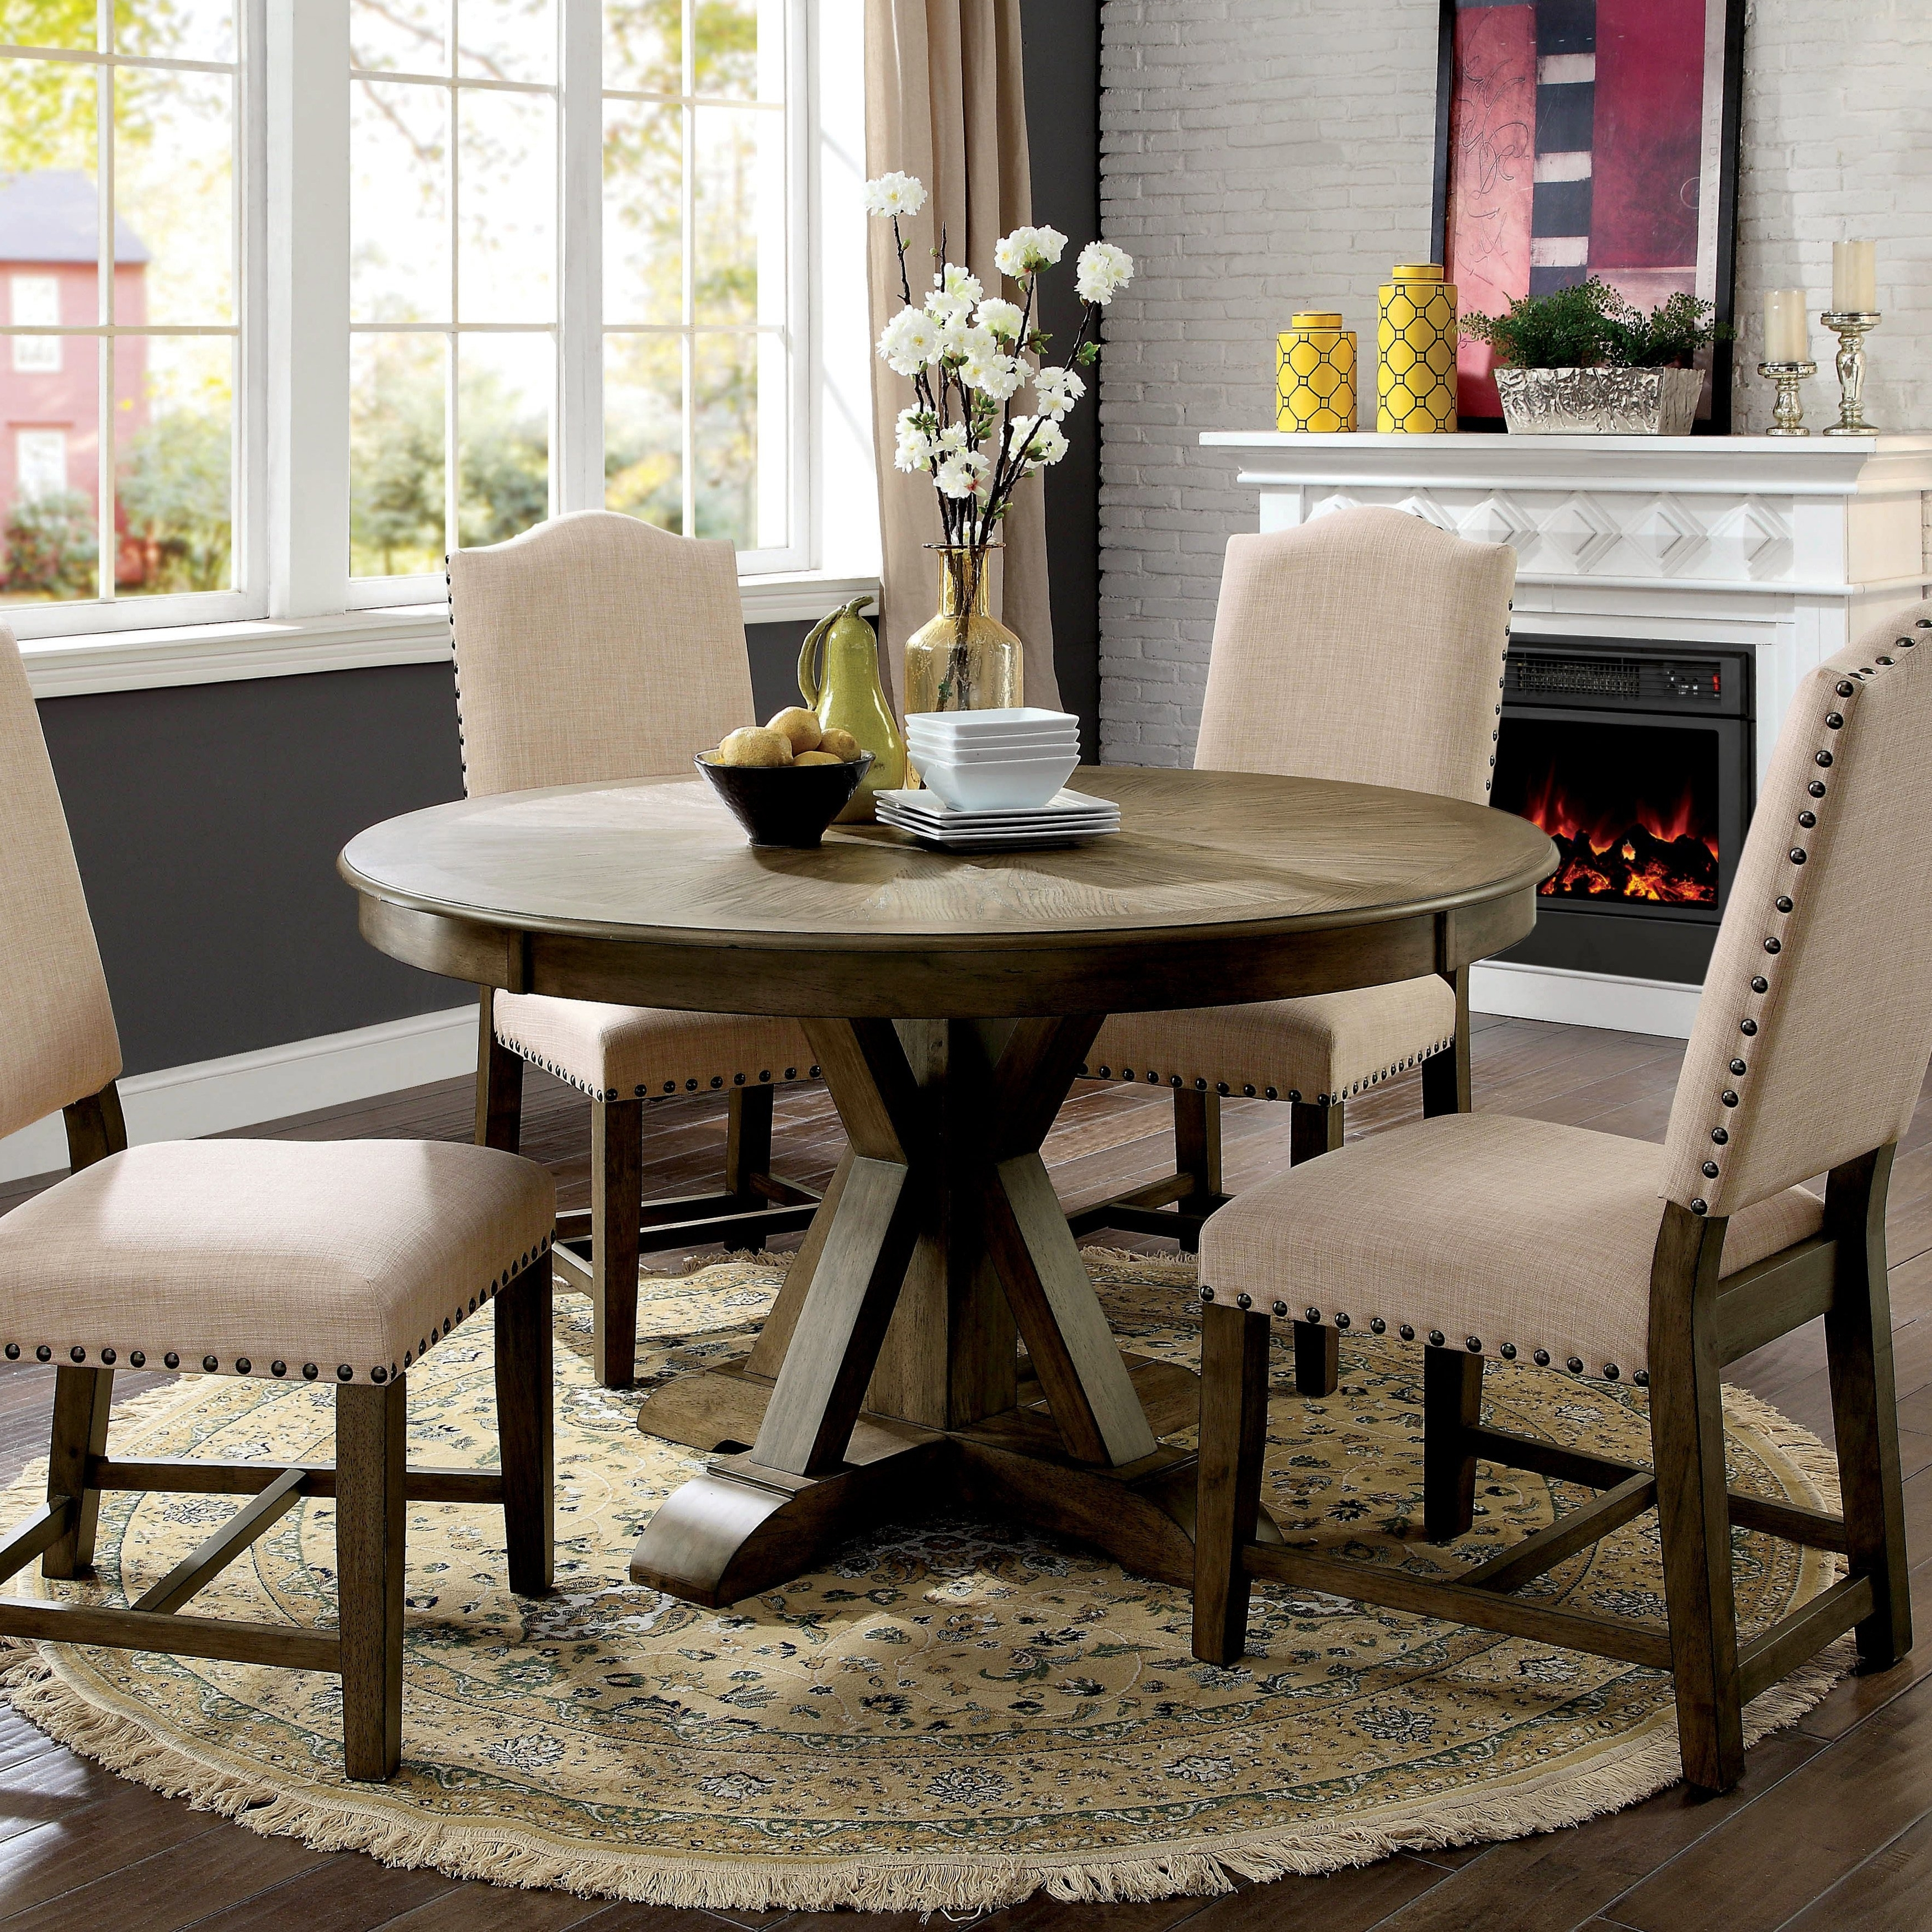 Recent Oak Round Dining Tables And Chairs Pertaining To Shop Furniture Of America Cooper Rustic Light Oak Round 54 Inch (View 15 of 25)